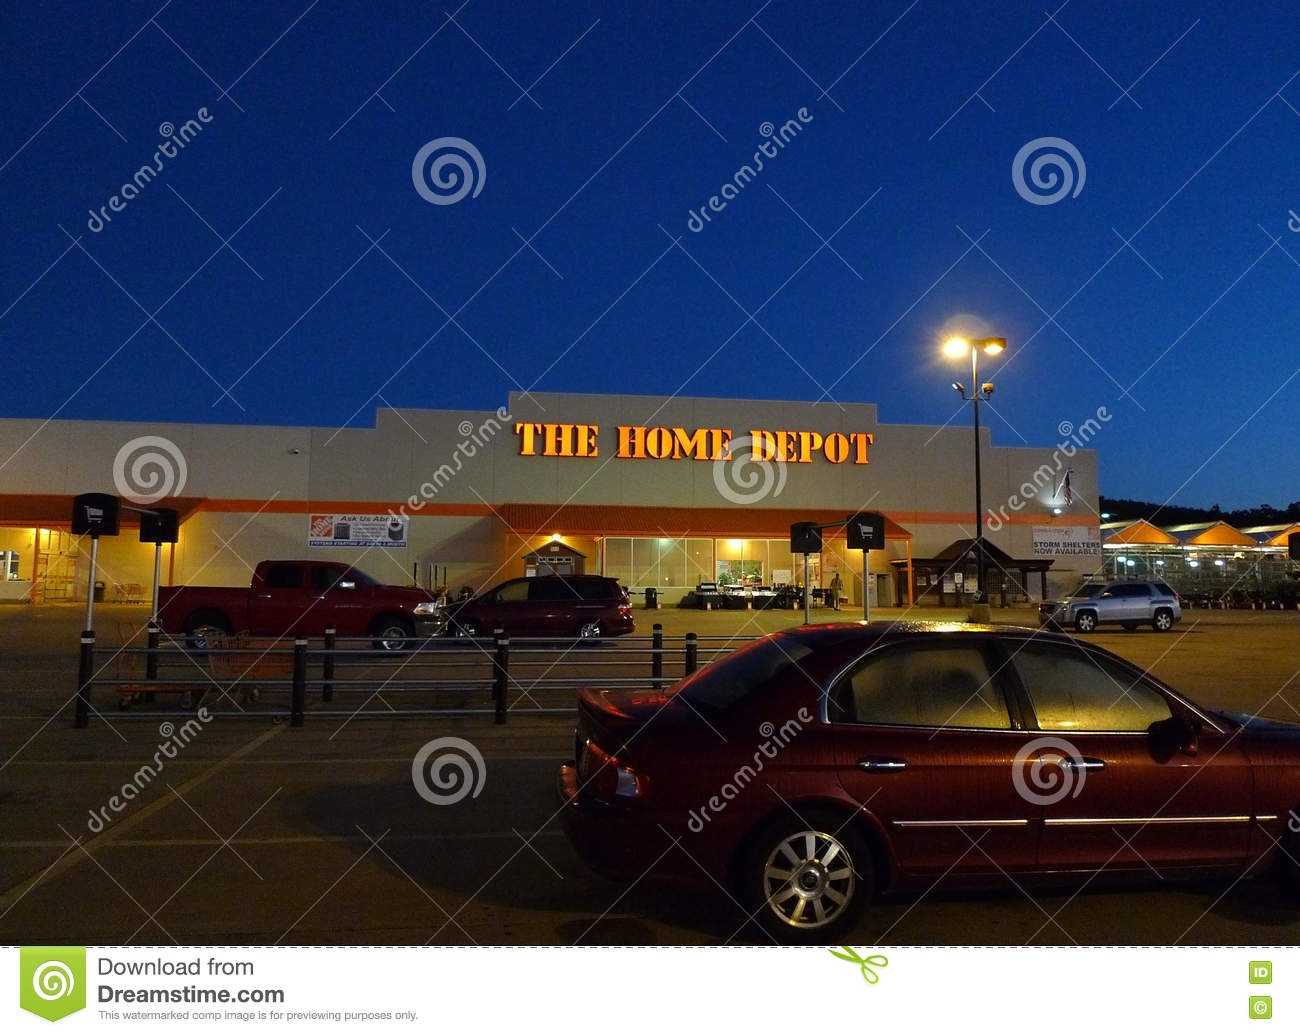 superior Fort Smith Home Depot Part - 2: The Home Depot store at sunrise or sunset